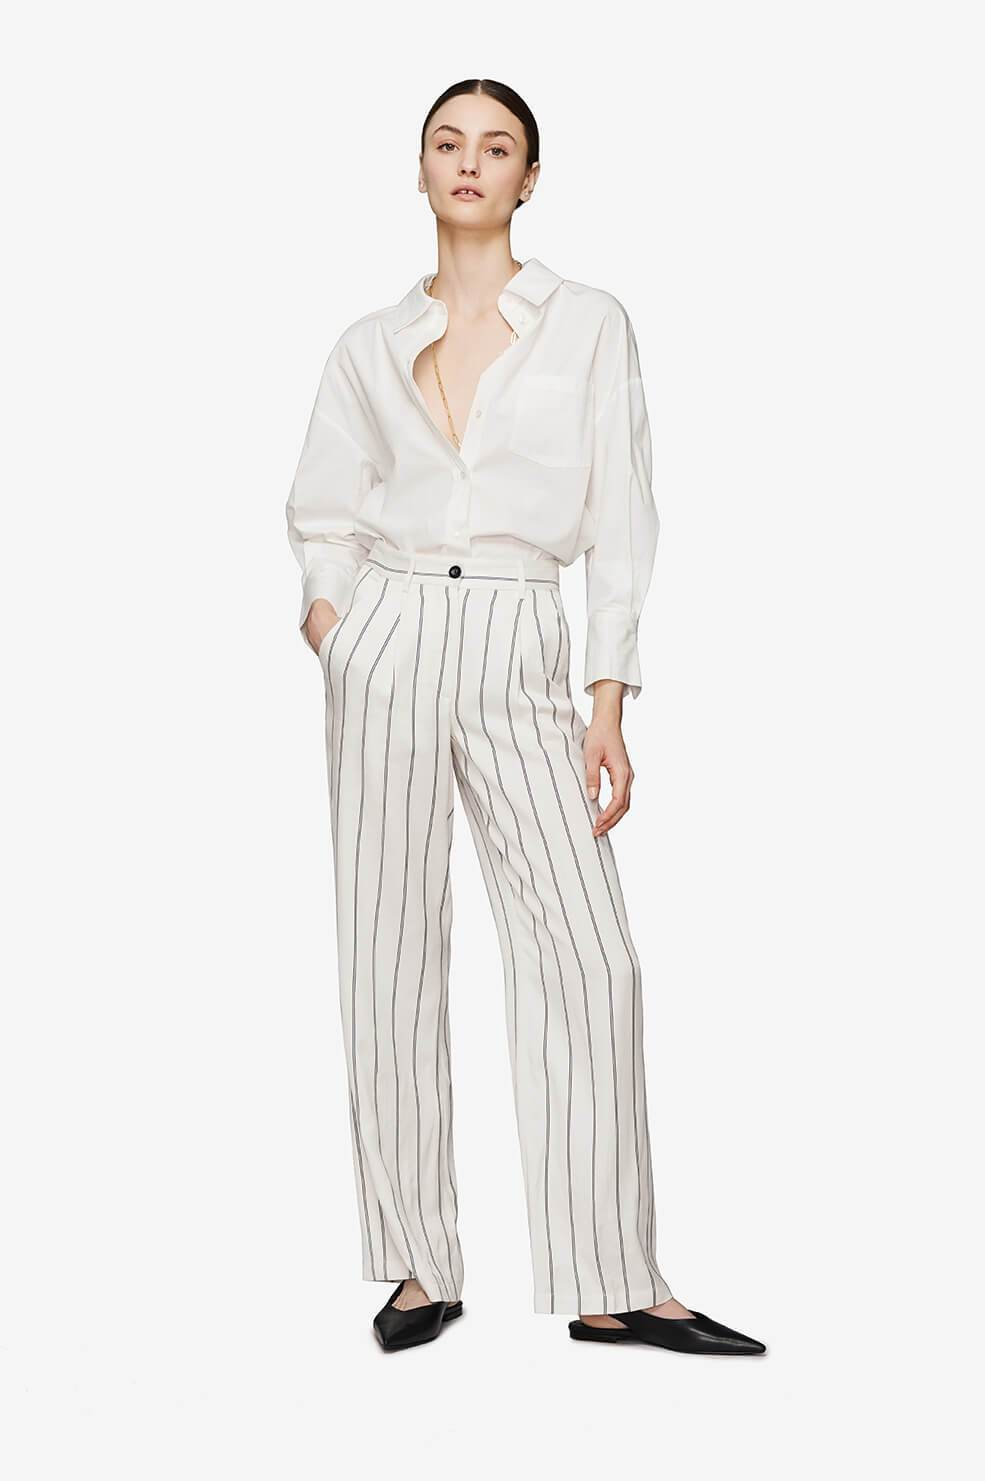 Ryan Trousers - Cream And Black Stripe